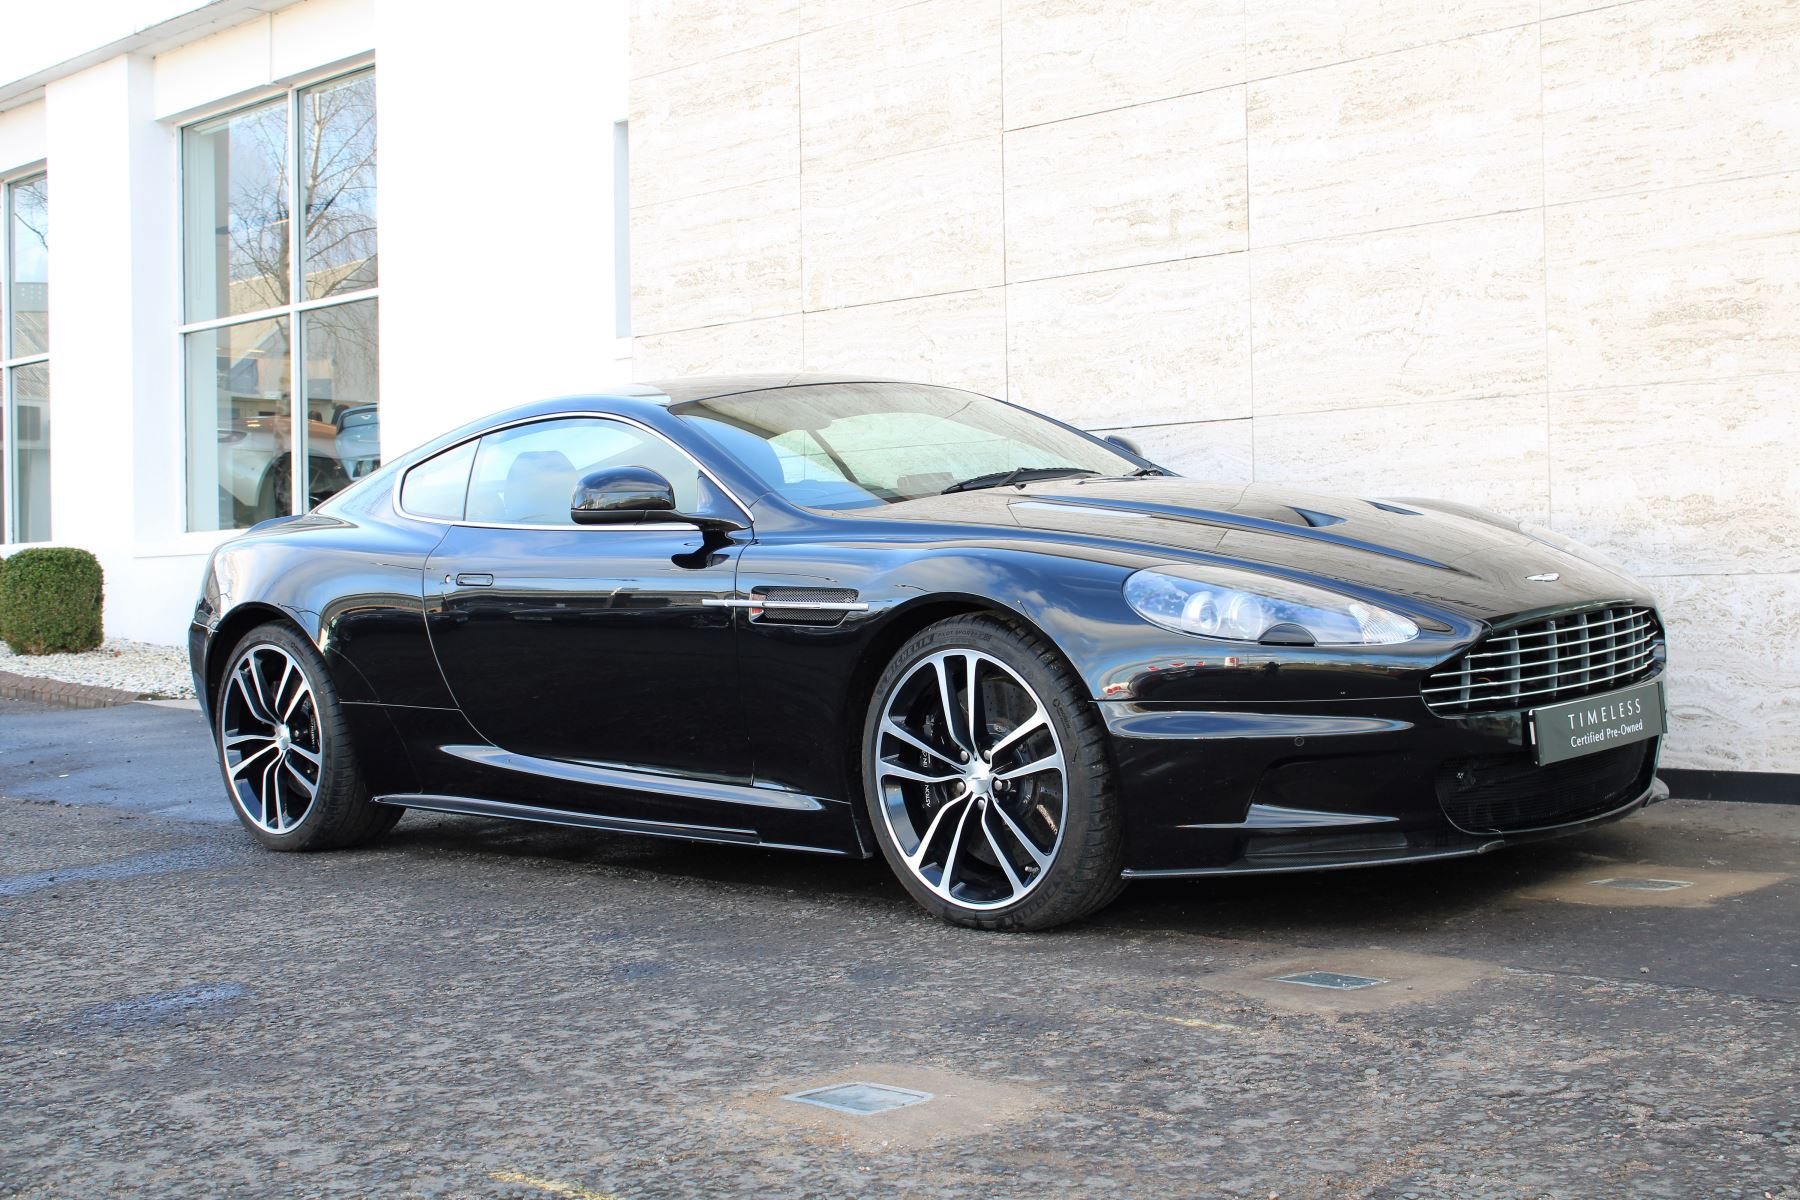 Aston Martin DBS V12 CARBON EDITION 2dr Touchtronic image 6